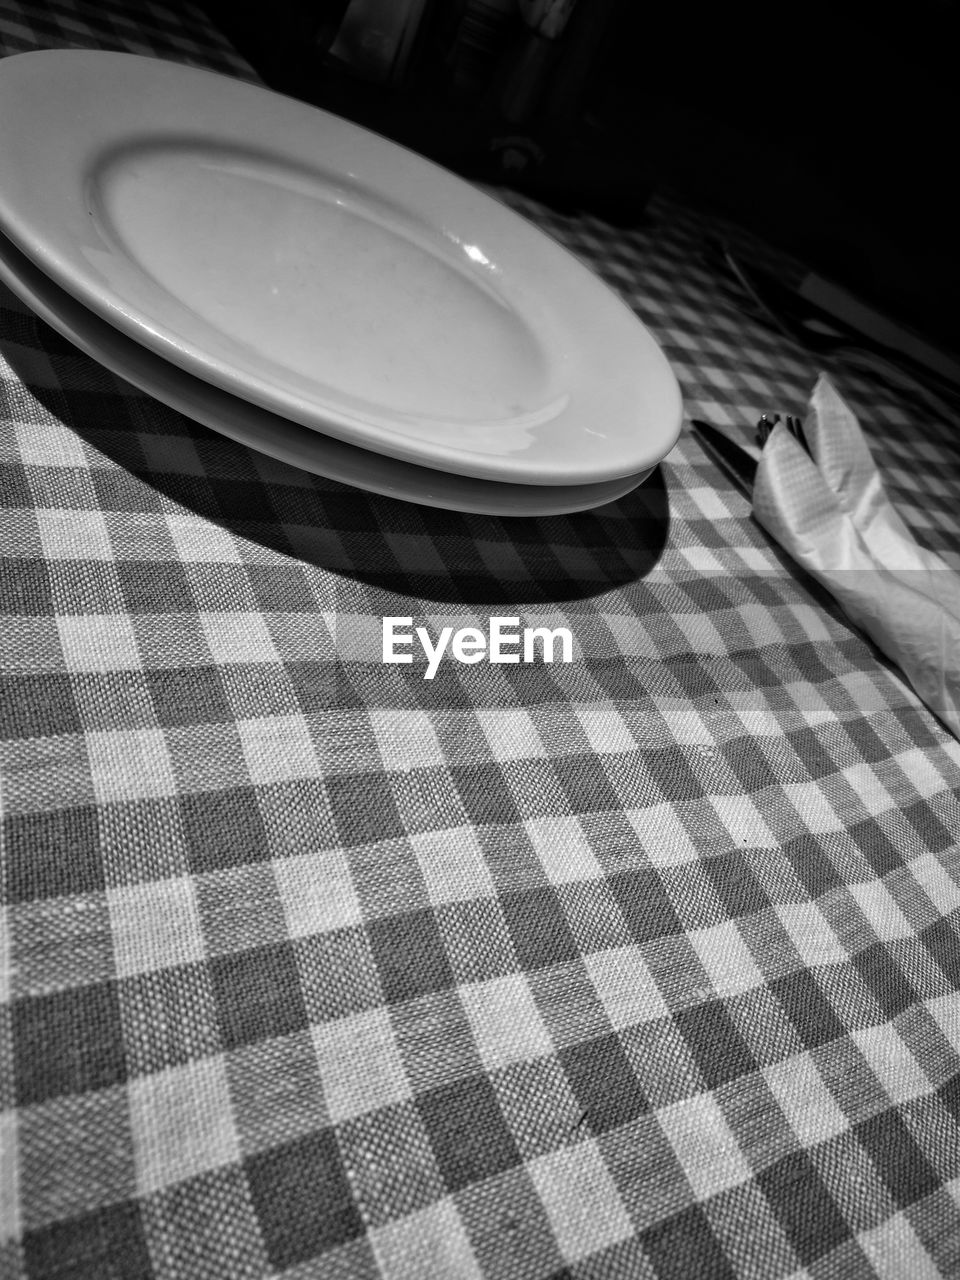 checked pattern, tablecloth, plate, table, pattern, indoors, no people, napkin, day, close-up